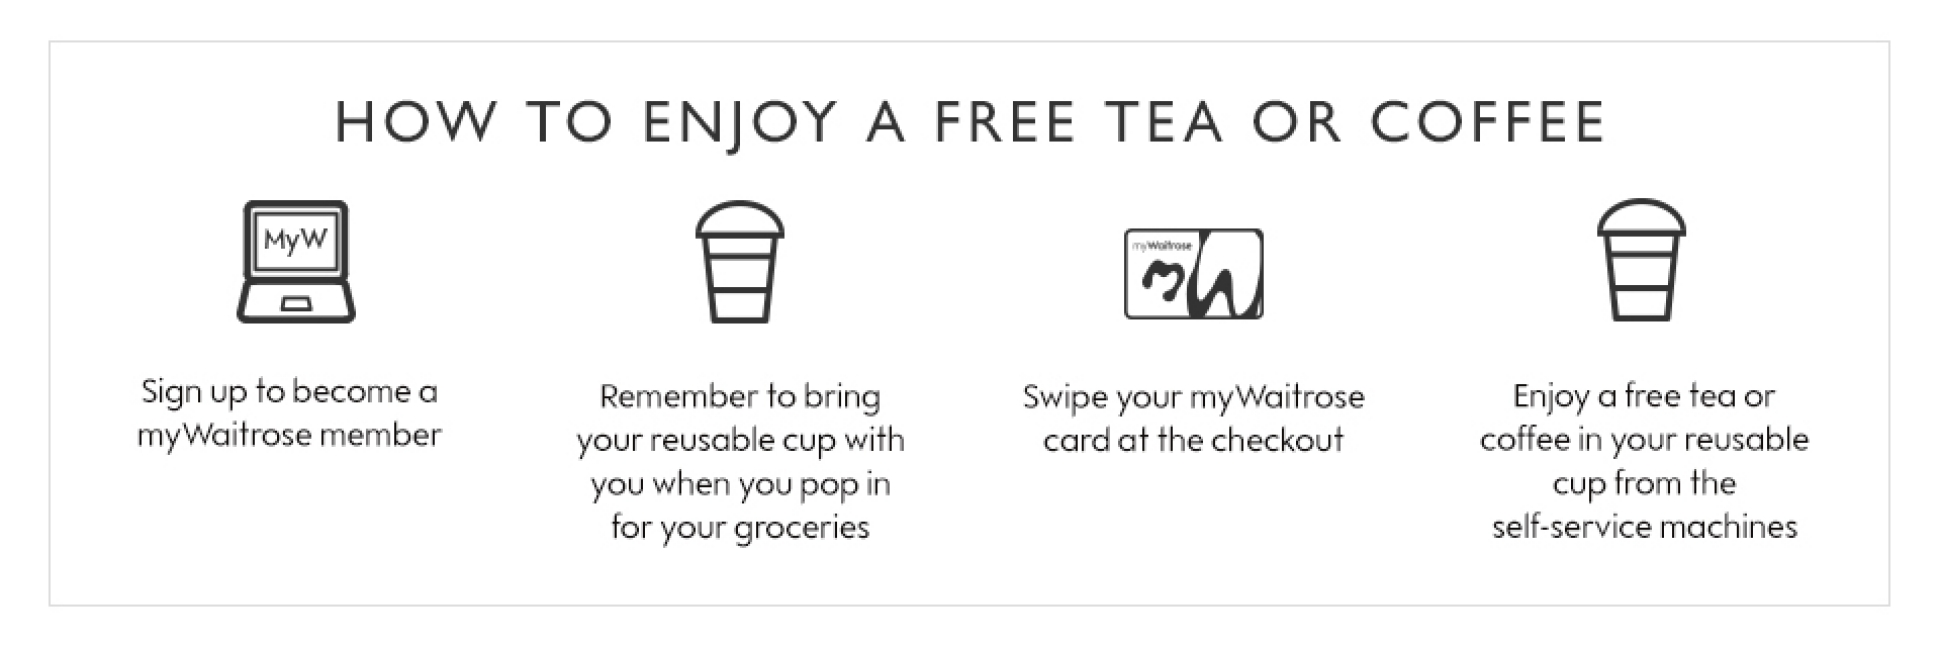 How to get a free tea or coffee